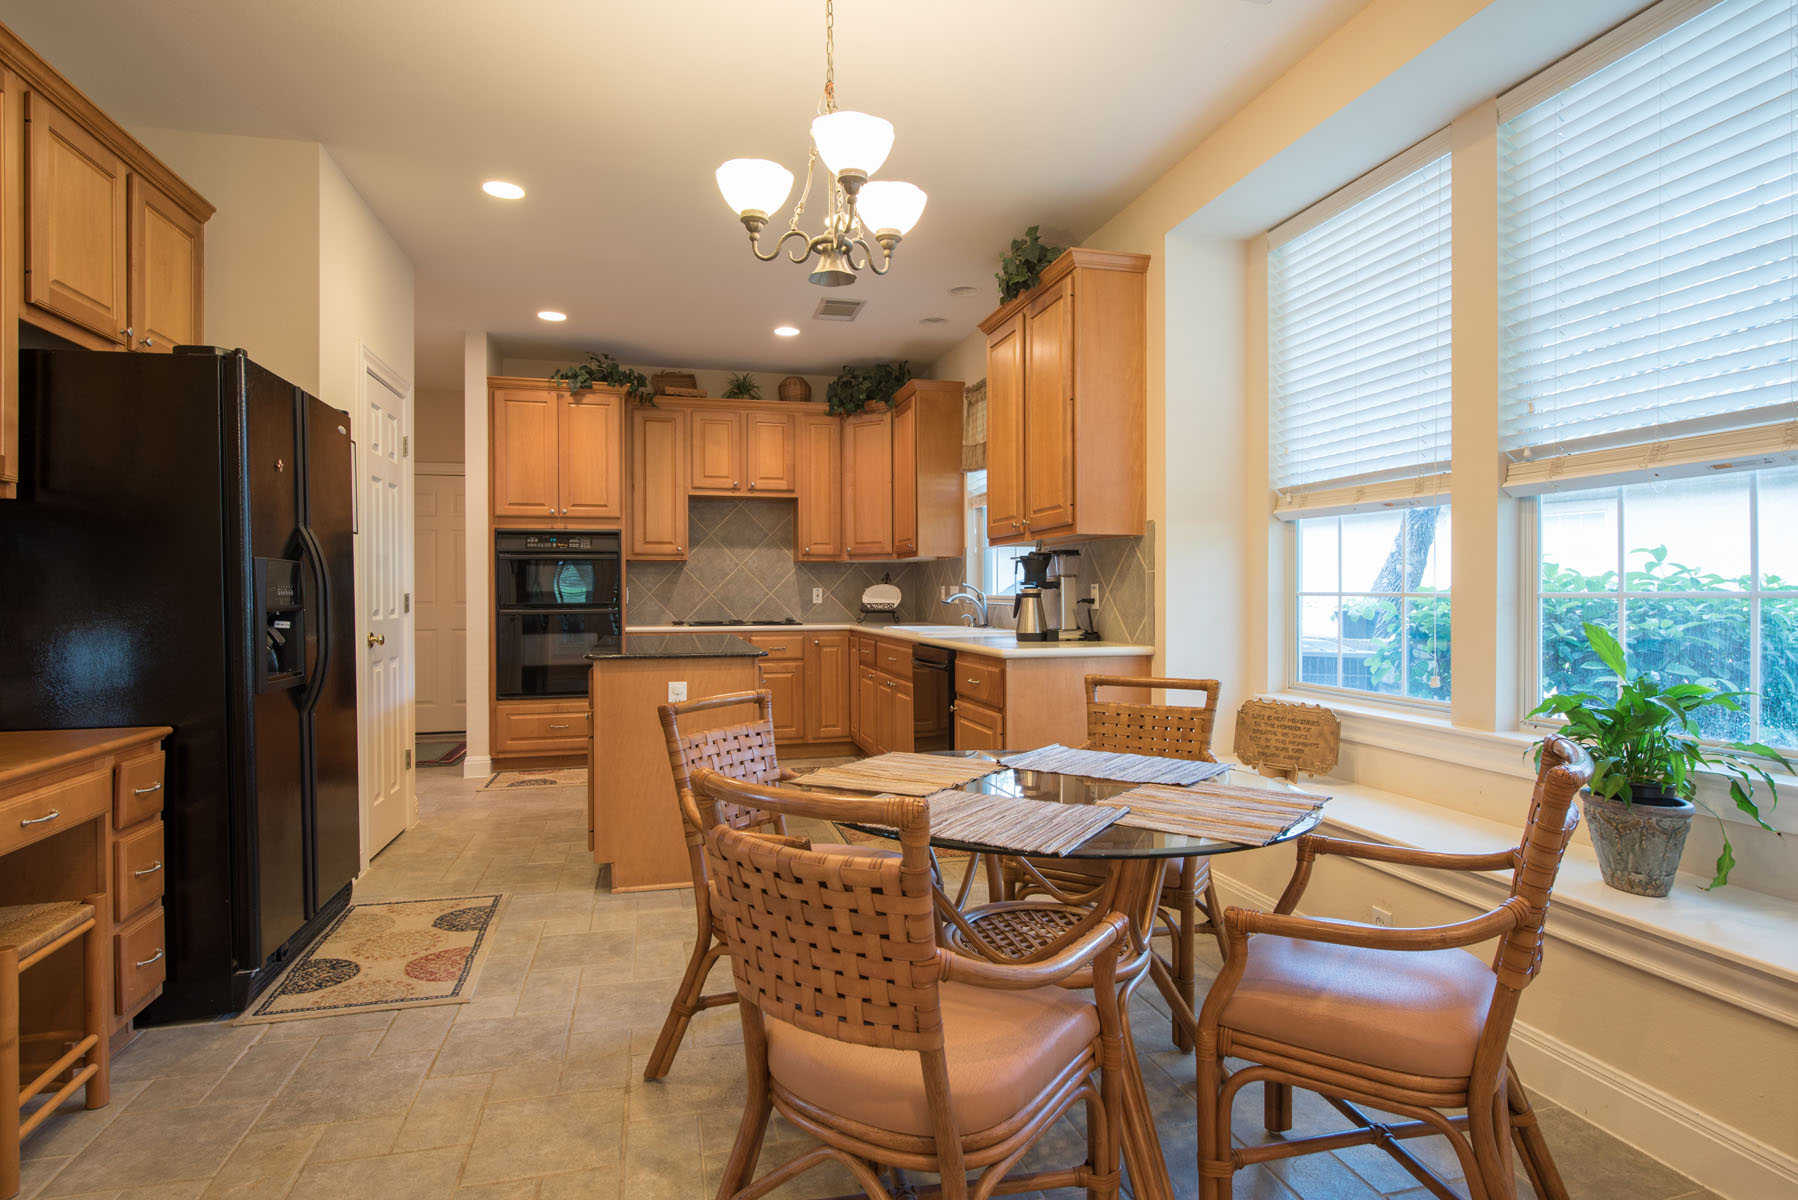 Additional photo for property listing at Golf Course Living 313 The Hills Dr 16 The Hills, Texas 78738 Estados Unidos